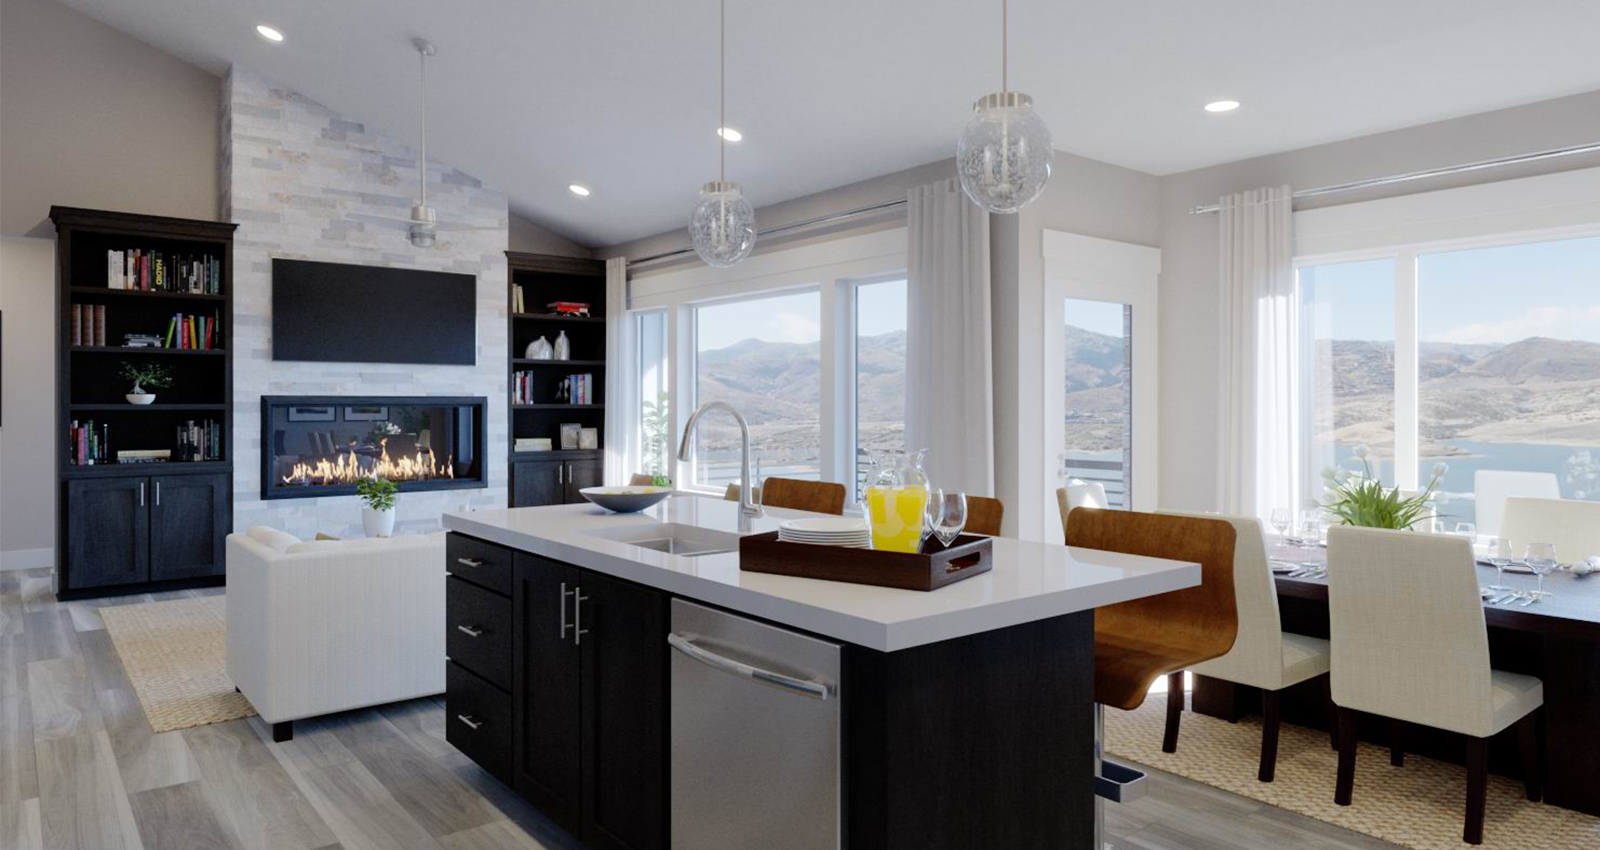 open luxury kitchen with view of mountains and lake